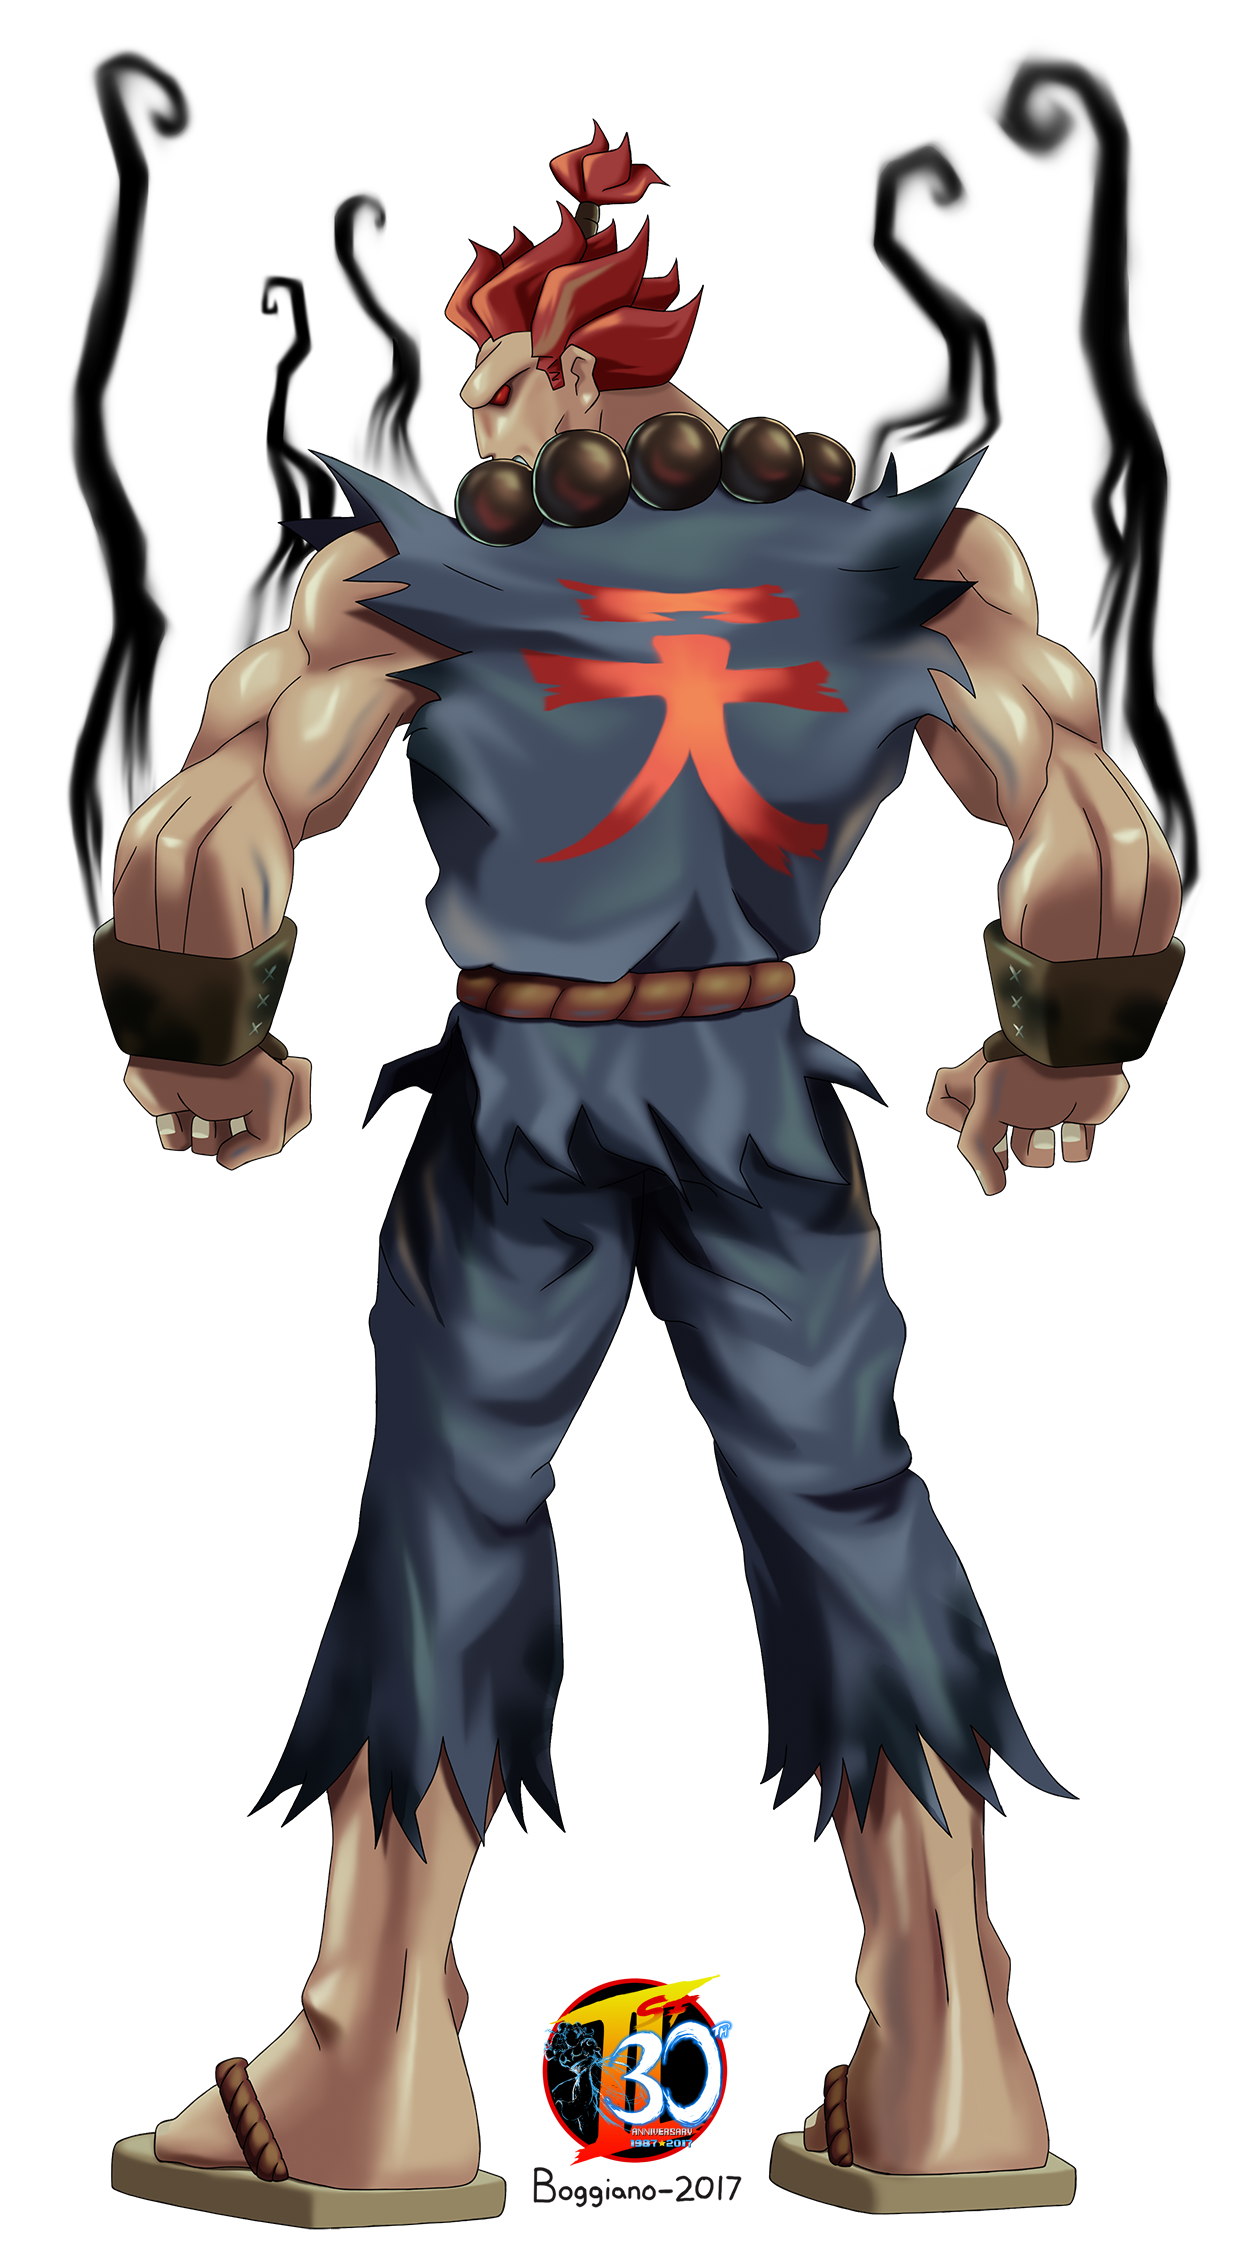 Fighting clipart street fighter. Our th tribute akuma